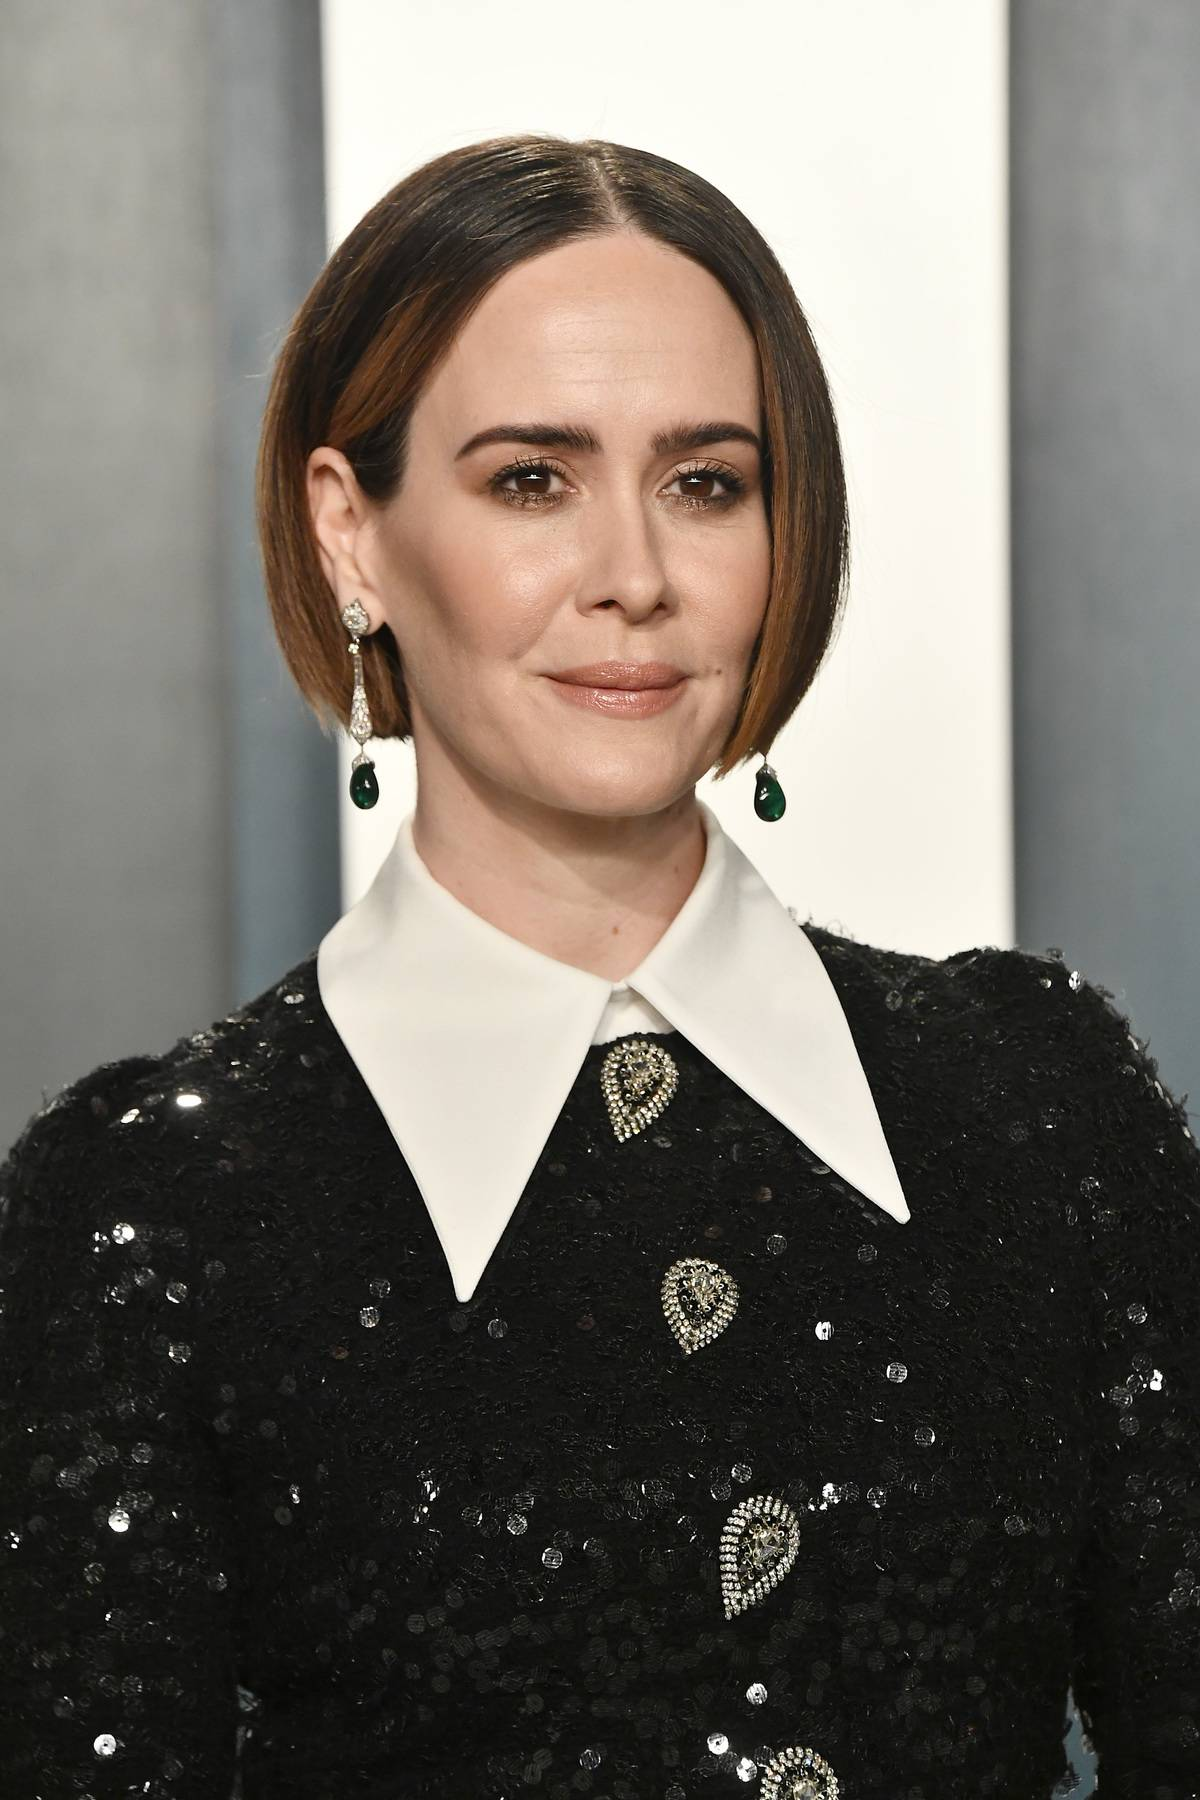 BEVERLY HILLS, CALIFORNIA - FEBRUARY 09: Sarah Paulson attends the 2020 Vanity Fair Oscar Party hosted by Radhika Jones at Wallis Annenberg Center for the Performing Arts on February 09, 2020 in Beverly Hills, California